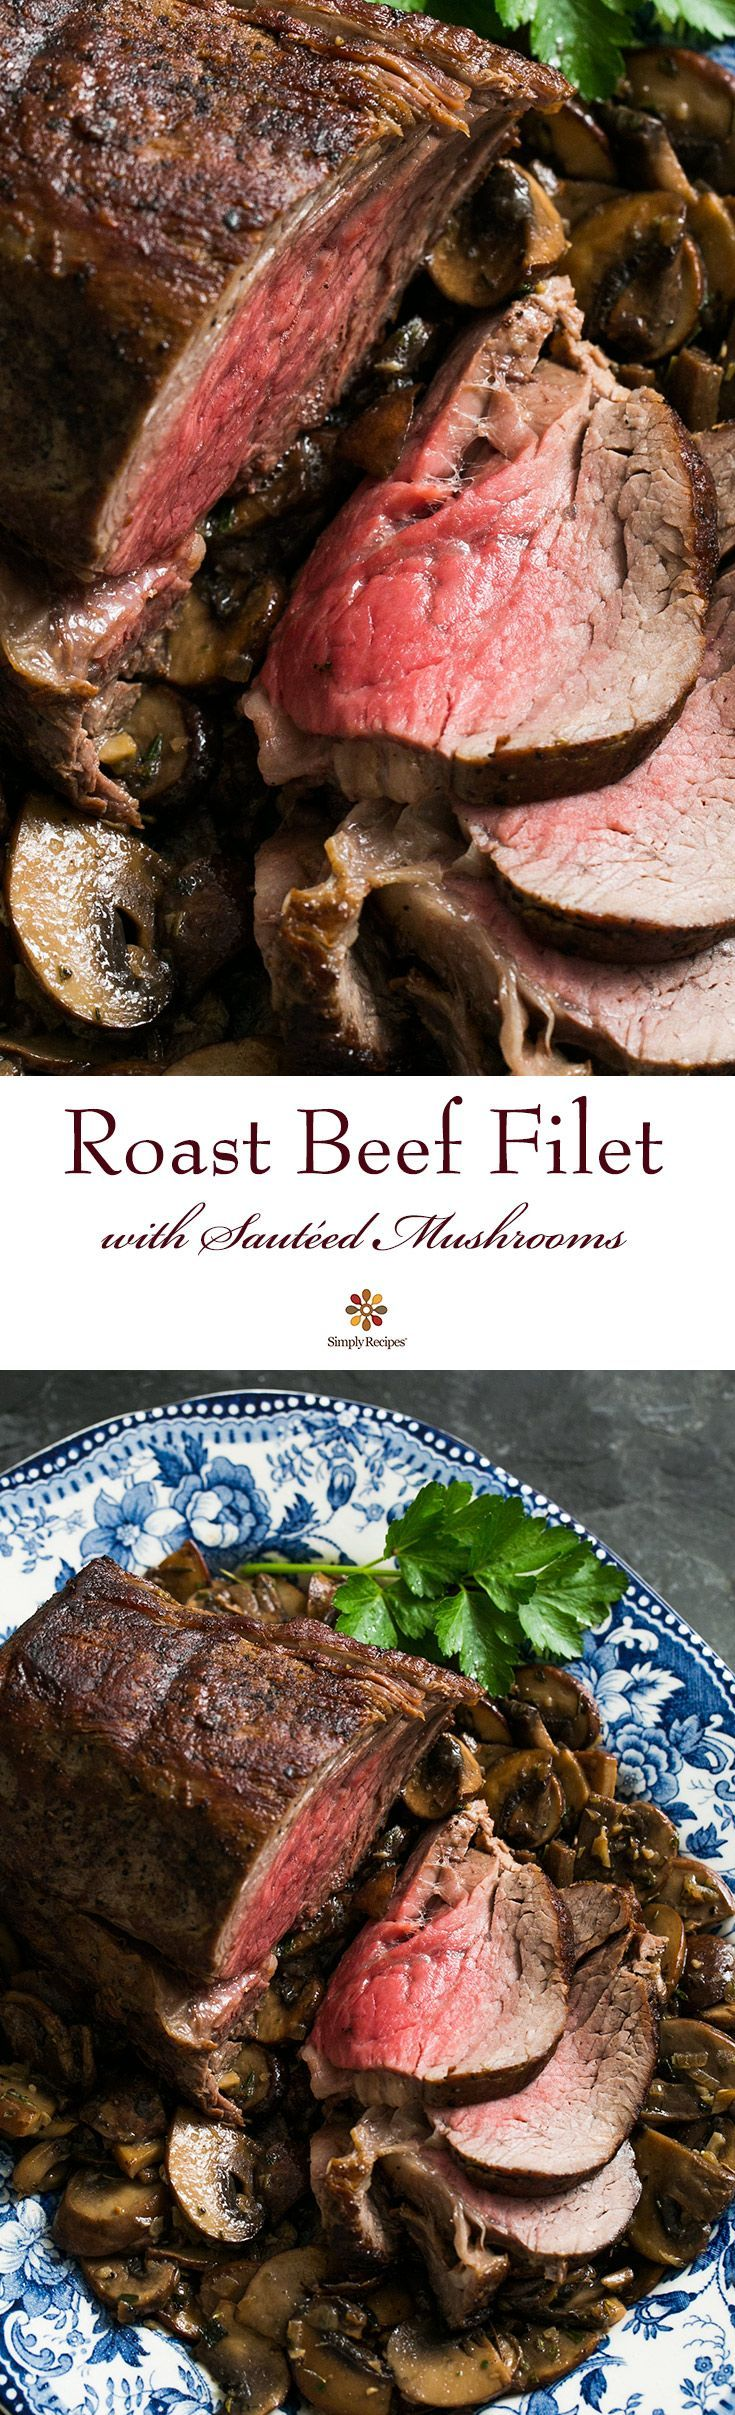 Roast Filet of Beef Tenderloin, seared then oven roasted, served with mushrooms sauted in the pan drippings with butter and herbs. Perfect for a special meal or entertaining! Get the recipe on SimplyRecipes.com